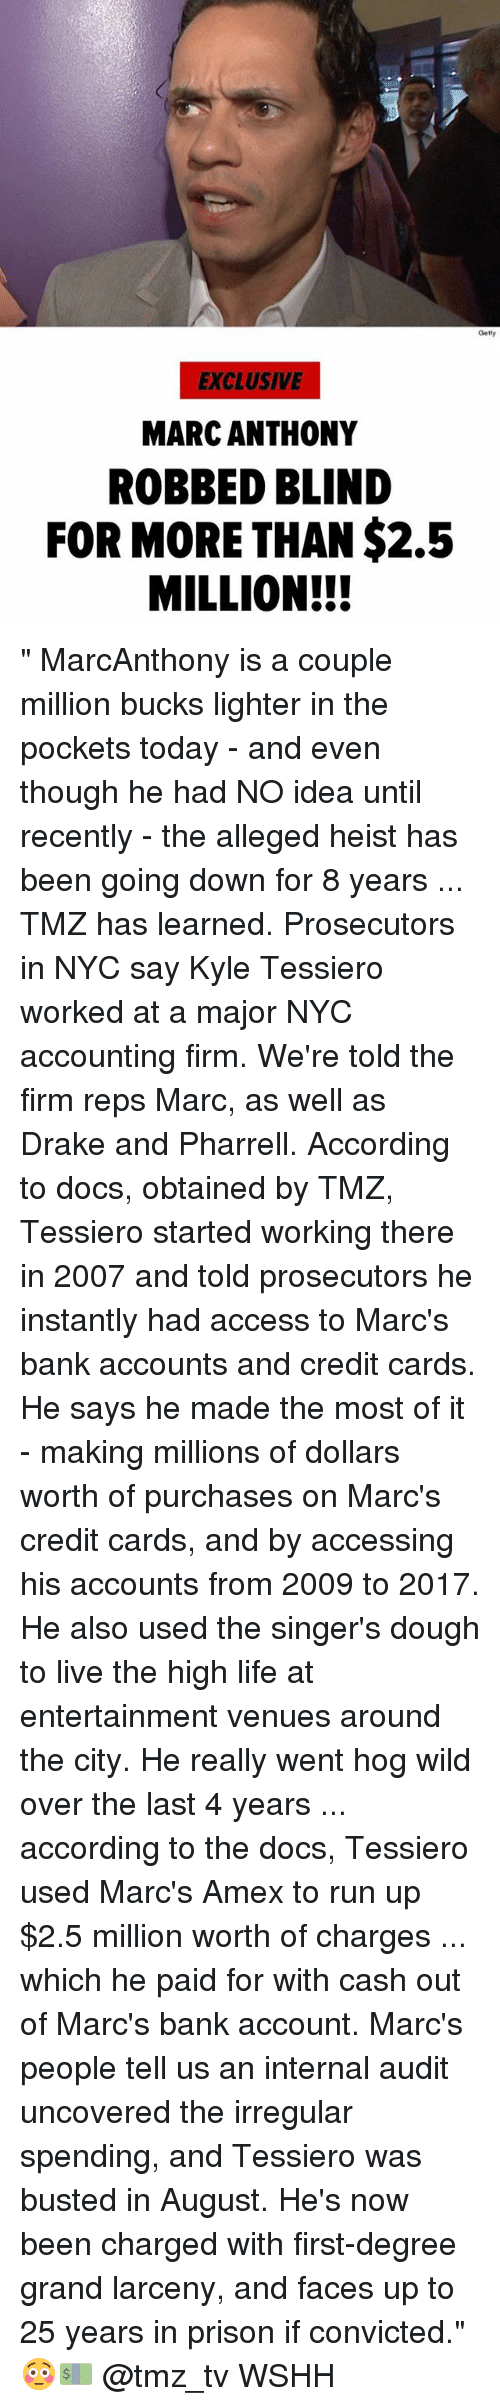 """Drake, Life, and Memes: Getty  EXCLUSIVE  MARC ANTHONY  ROBBED BLIND  FOR MORE THAN $2.5  MILLION!! """" MarcAnthony is a couple million bucks lighter in the pockets today - and even though he had NO idea until recently - the alleged heist has been going down for 8 years ... TMZ has learned. Prosecutors in NYC say Kyle Tessiero worked at a major NYC accounting firm. We're told the firm reps Marc, as well as Drake and Pharrell. According to docs, obtained by TMZ, Tessiero started working there in 2007 and told prosecutors he instantly had access to Marc's bank accounts and credit cards. He says he made the most of it - making millions of dollars worth of purchases on Marc's credit cards, and by accessing his accounts from 2009 to 2017. He also used the singer's dough to live the high life at entertainment venues around the city. He really went hog wild over the last 4 years ... according to the docs, Tessiero used Marc's Amex to run up $2.5 million worth of charges ... which he paid for with cash out of Marc's bank account. Marc's people tell us an internal audit uncovered the irregular spending, and Tessiero was busted in August. He's now been charged with first-degree grand larceny, and faces up to 25 years in prison if convicted."""" 😳💵 @tmz_tv WSHH"""